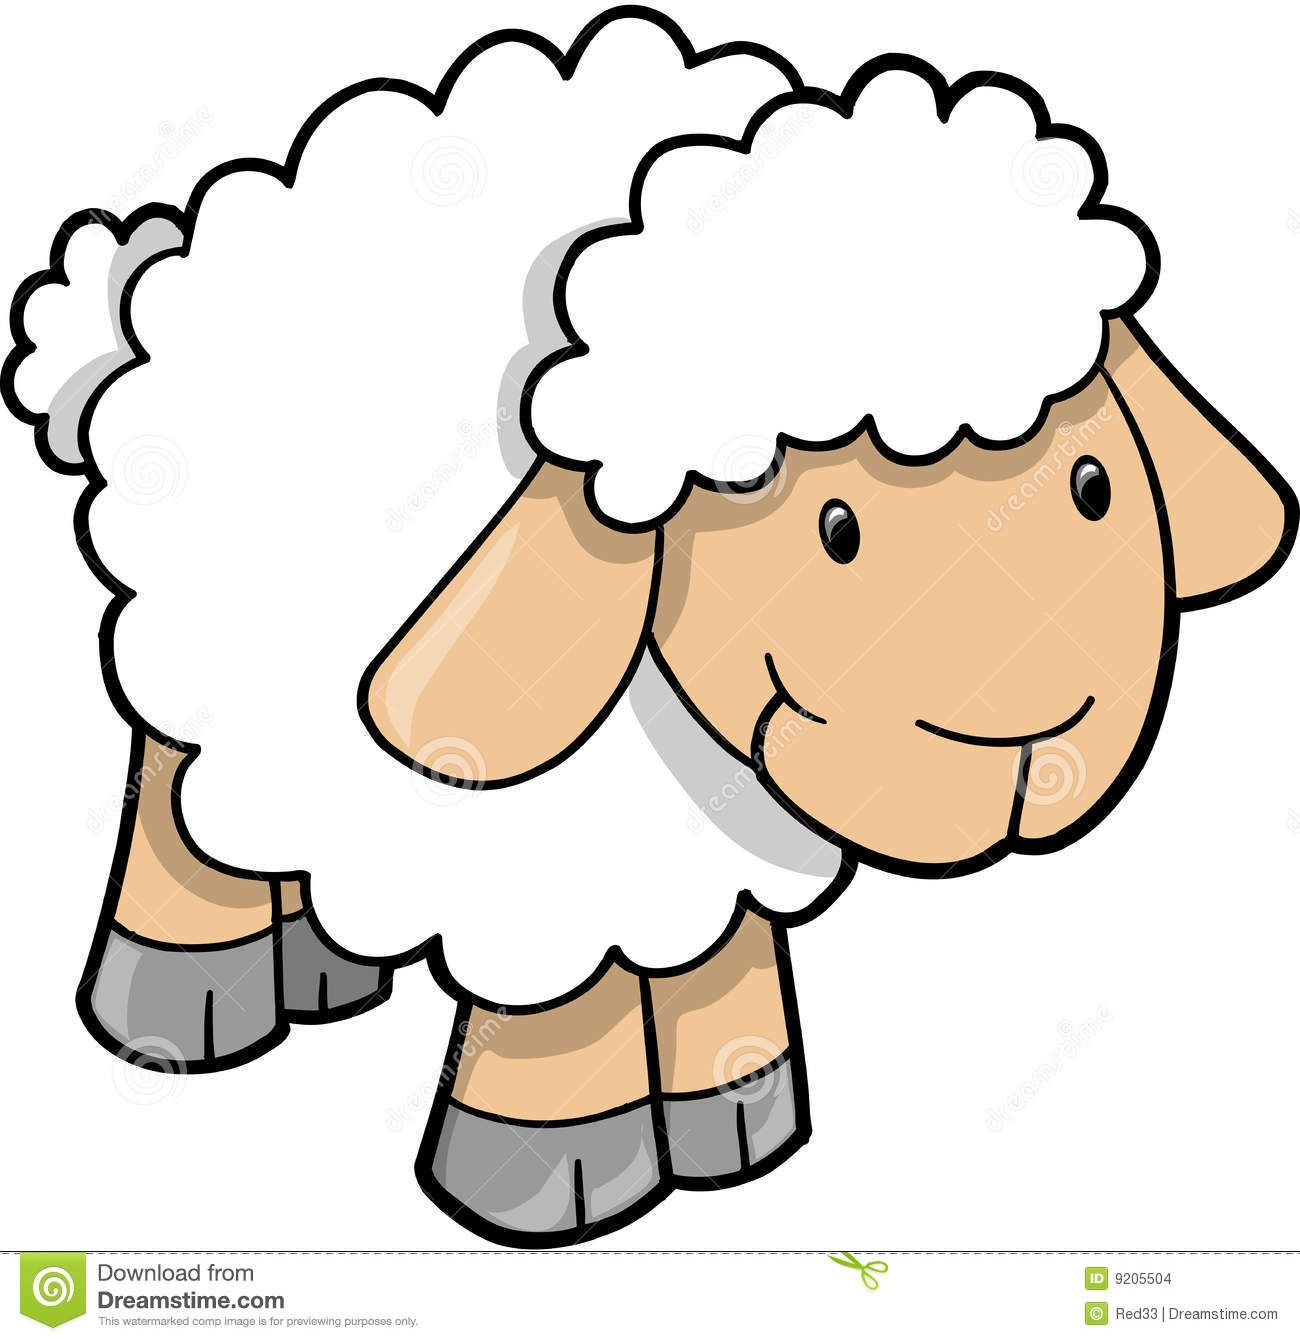 cute sheep images.